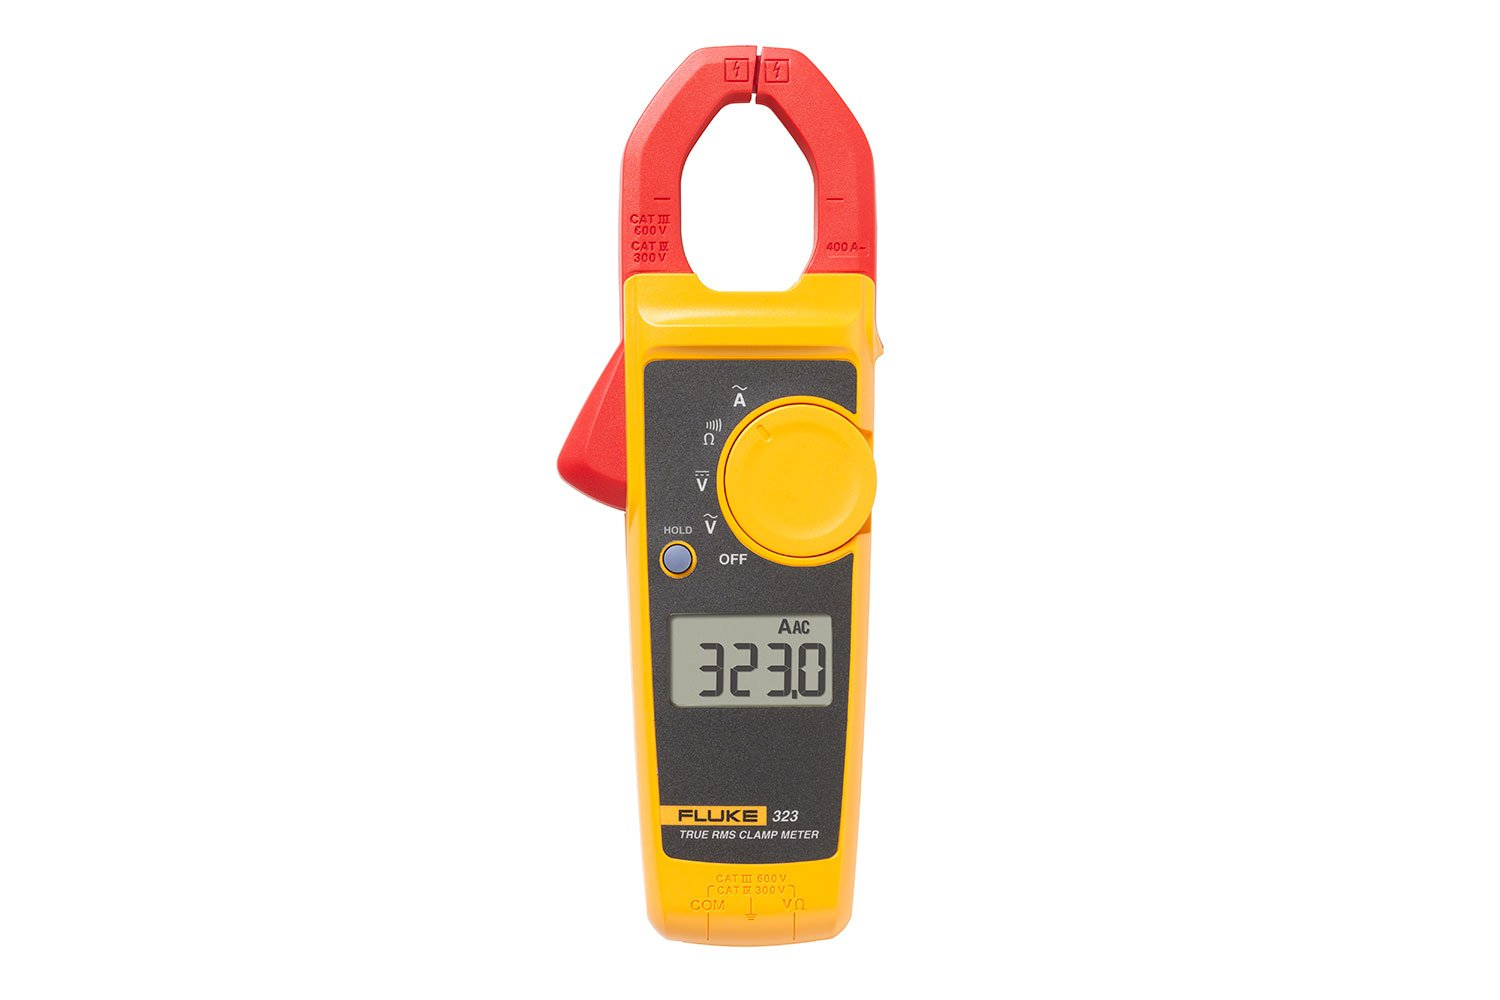 Ideal Clamp Multimeter Fluke 323 True Rms Meter Noncontact Voltage Detector Gets The Job Done Quickly And Safely